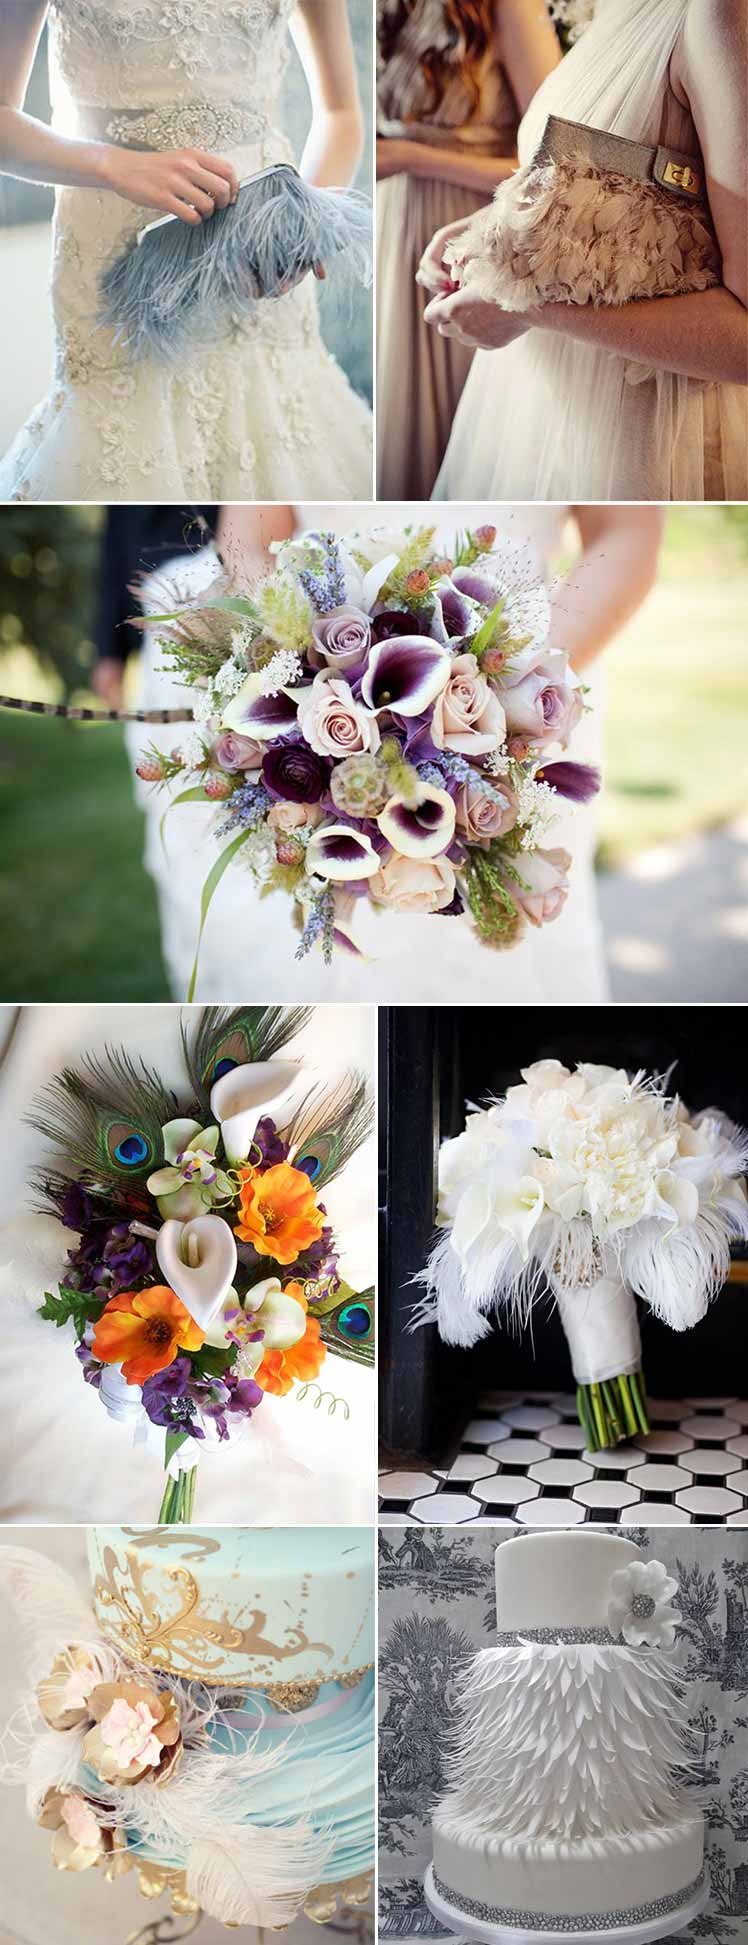 Ideas for a feather themed wedding day